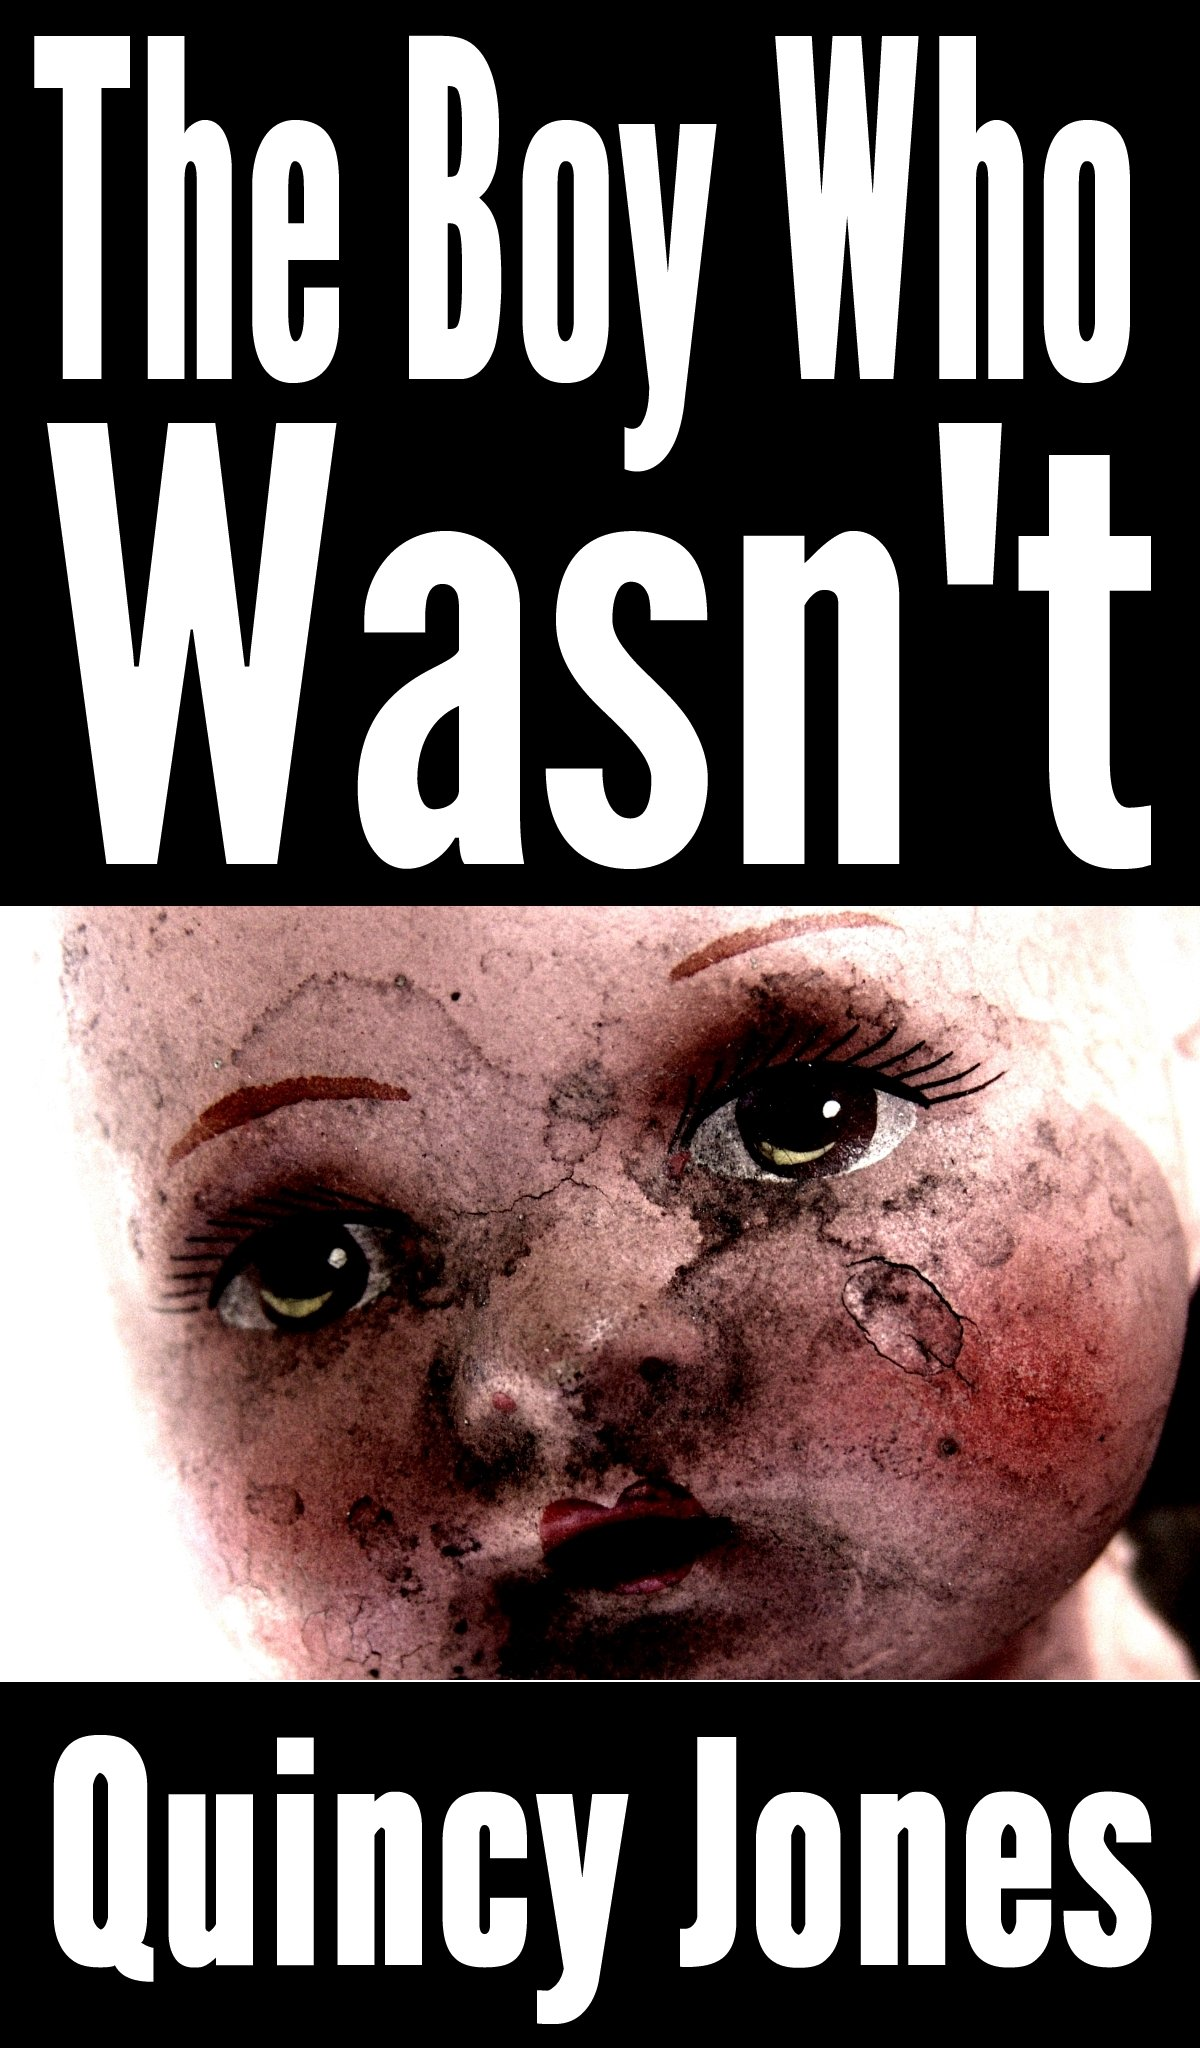 The Boy Who Wasn't